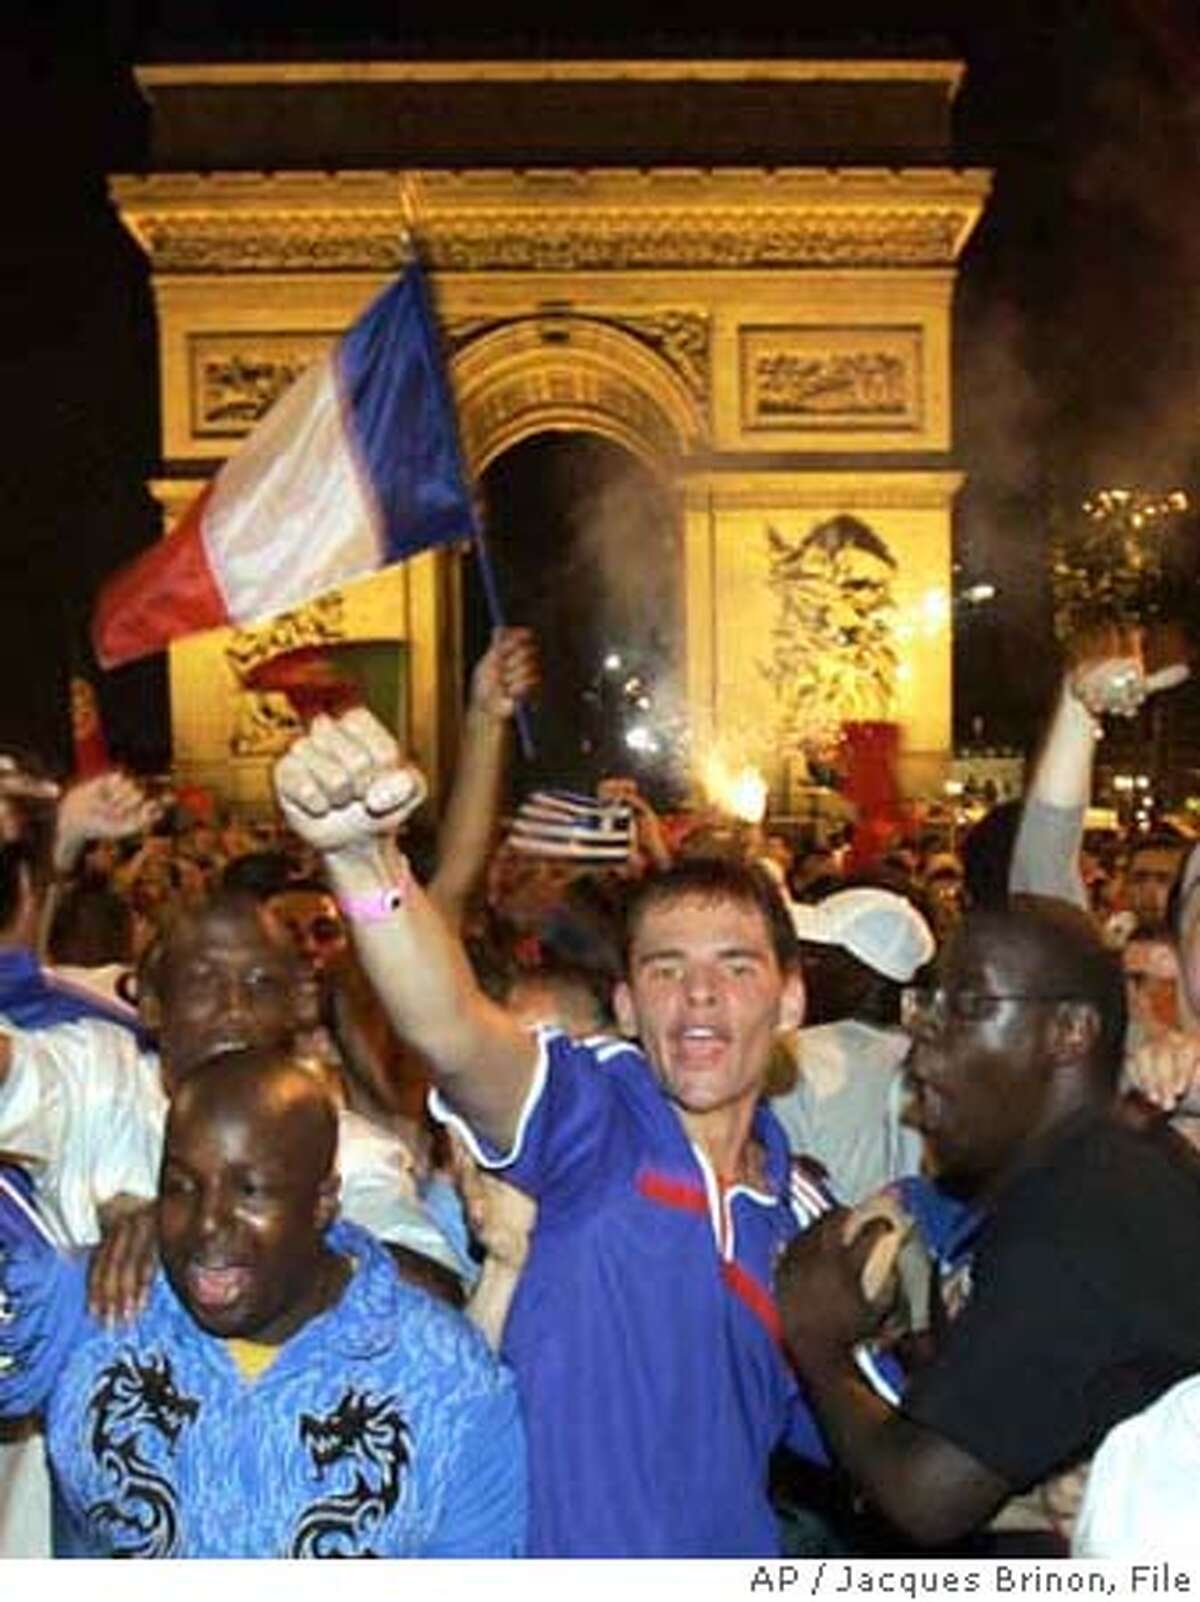 FILE -- People celebrate on the Champs Elysees avenue after the quarterfinal match France against Brazil, Saturday July 1, 2006 in Paris. As France braces for a showdown against Italy in Sunday's soccer World Cup final, the government hopes a resurgence of pride in Les Bleus can also boost economic confidence. But experts say the evidence that sporting success can have lasting economic impact is mixed. (AP Photo/Jacques Brinon) FILE